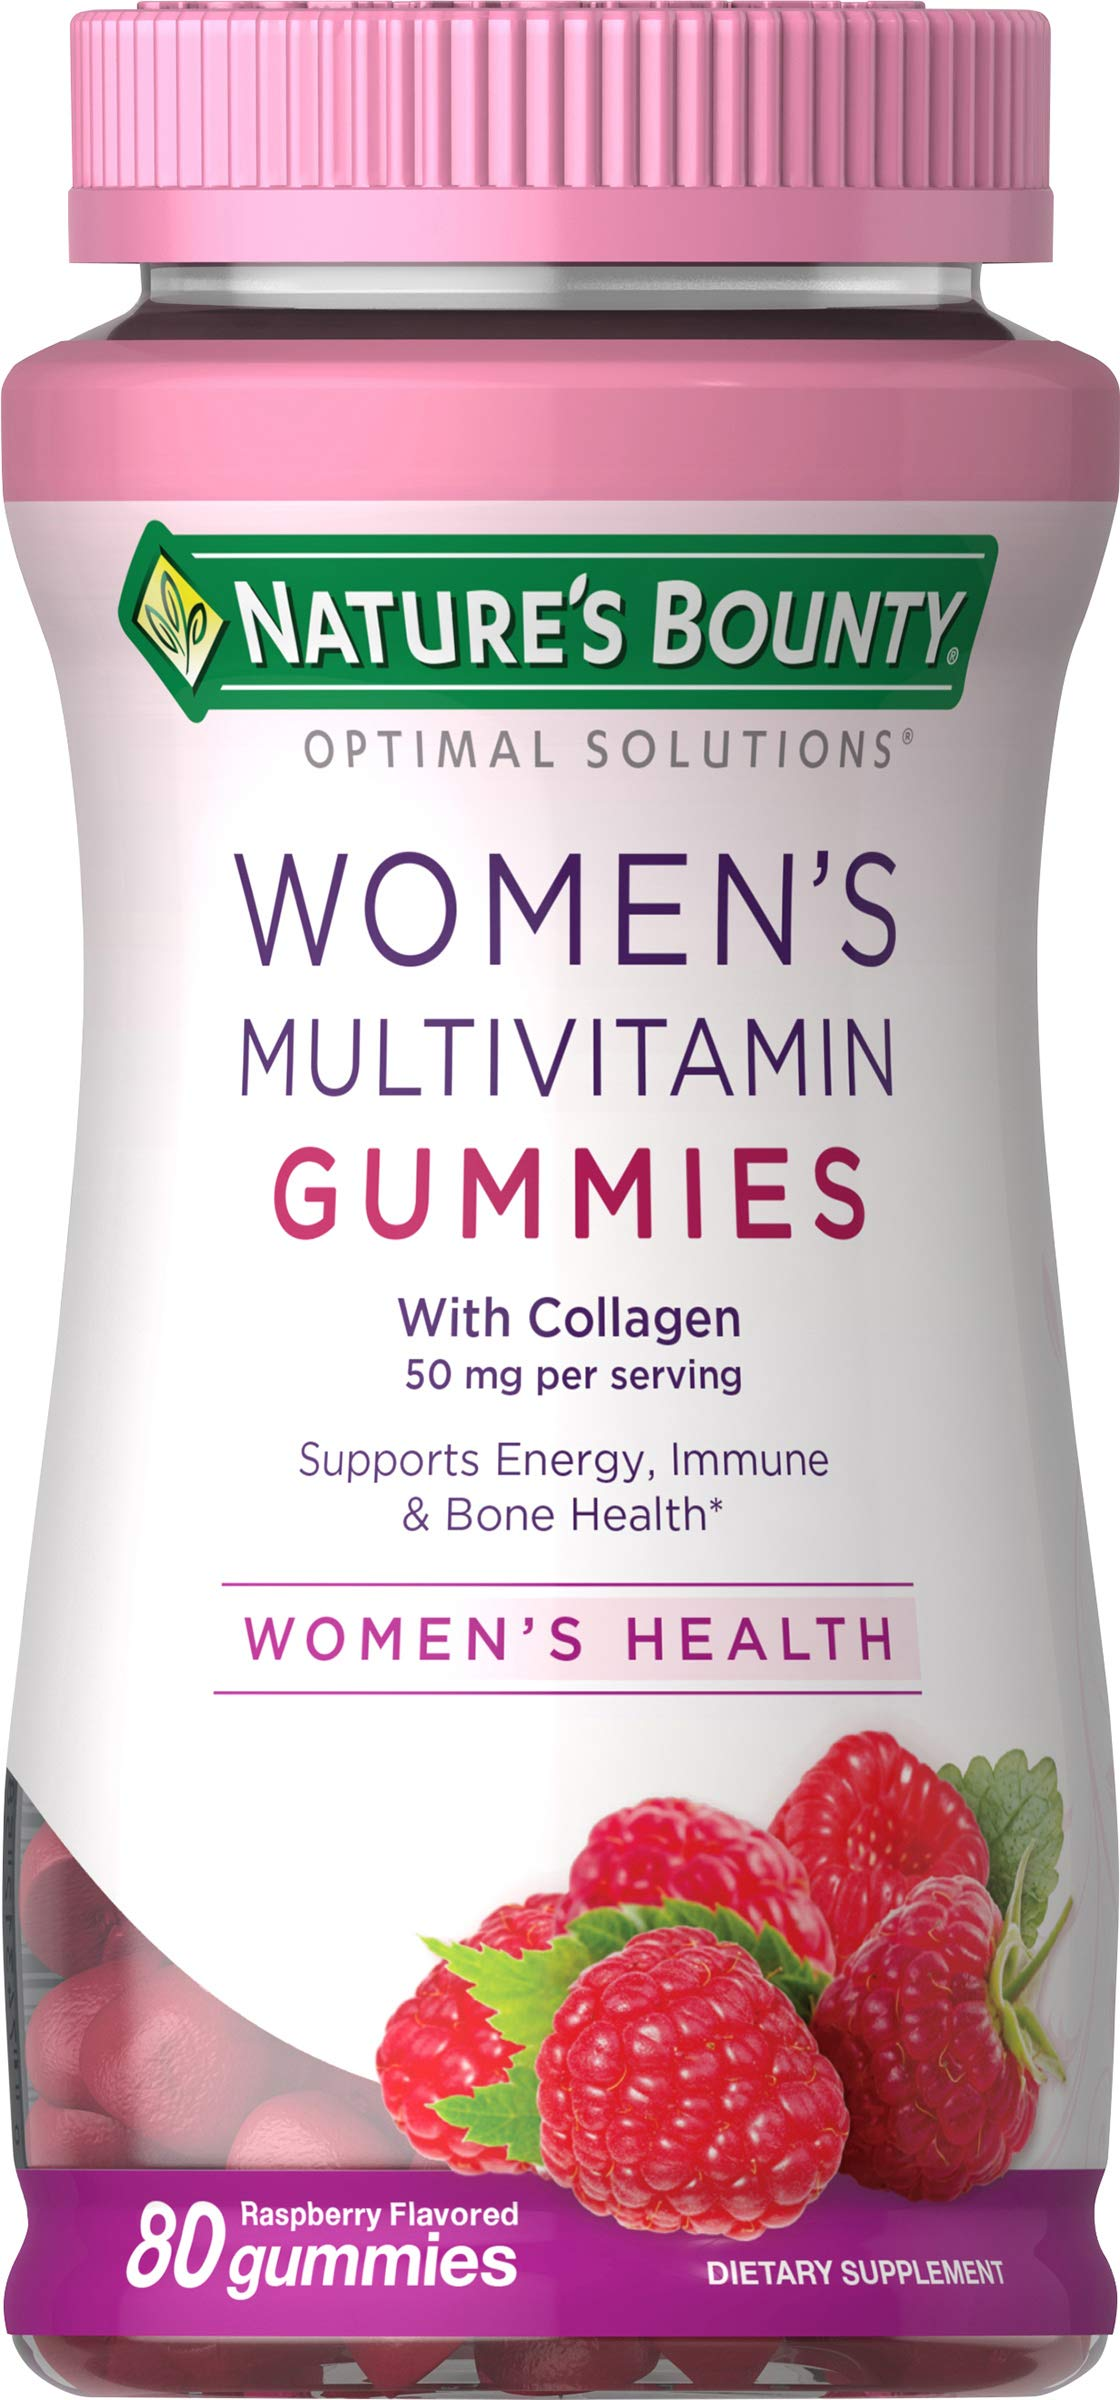 Women's Multivitamin by Nature's Bounty Optimal Solutions